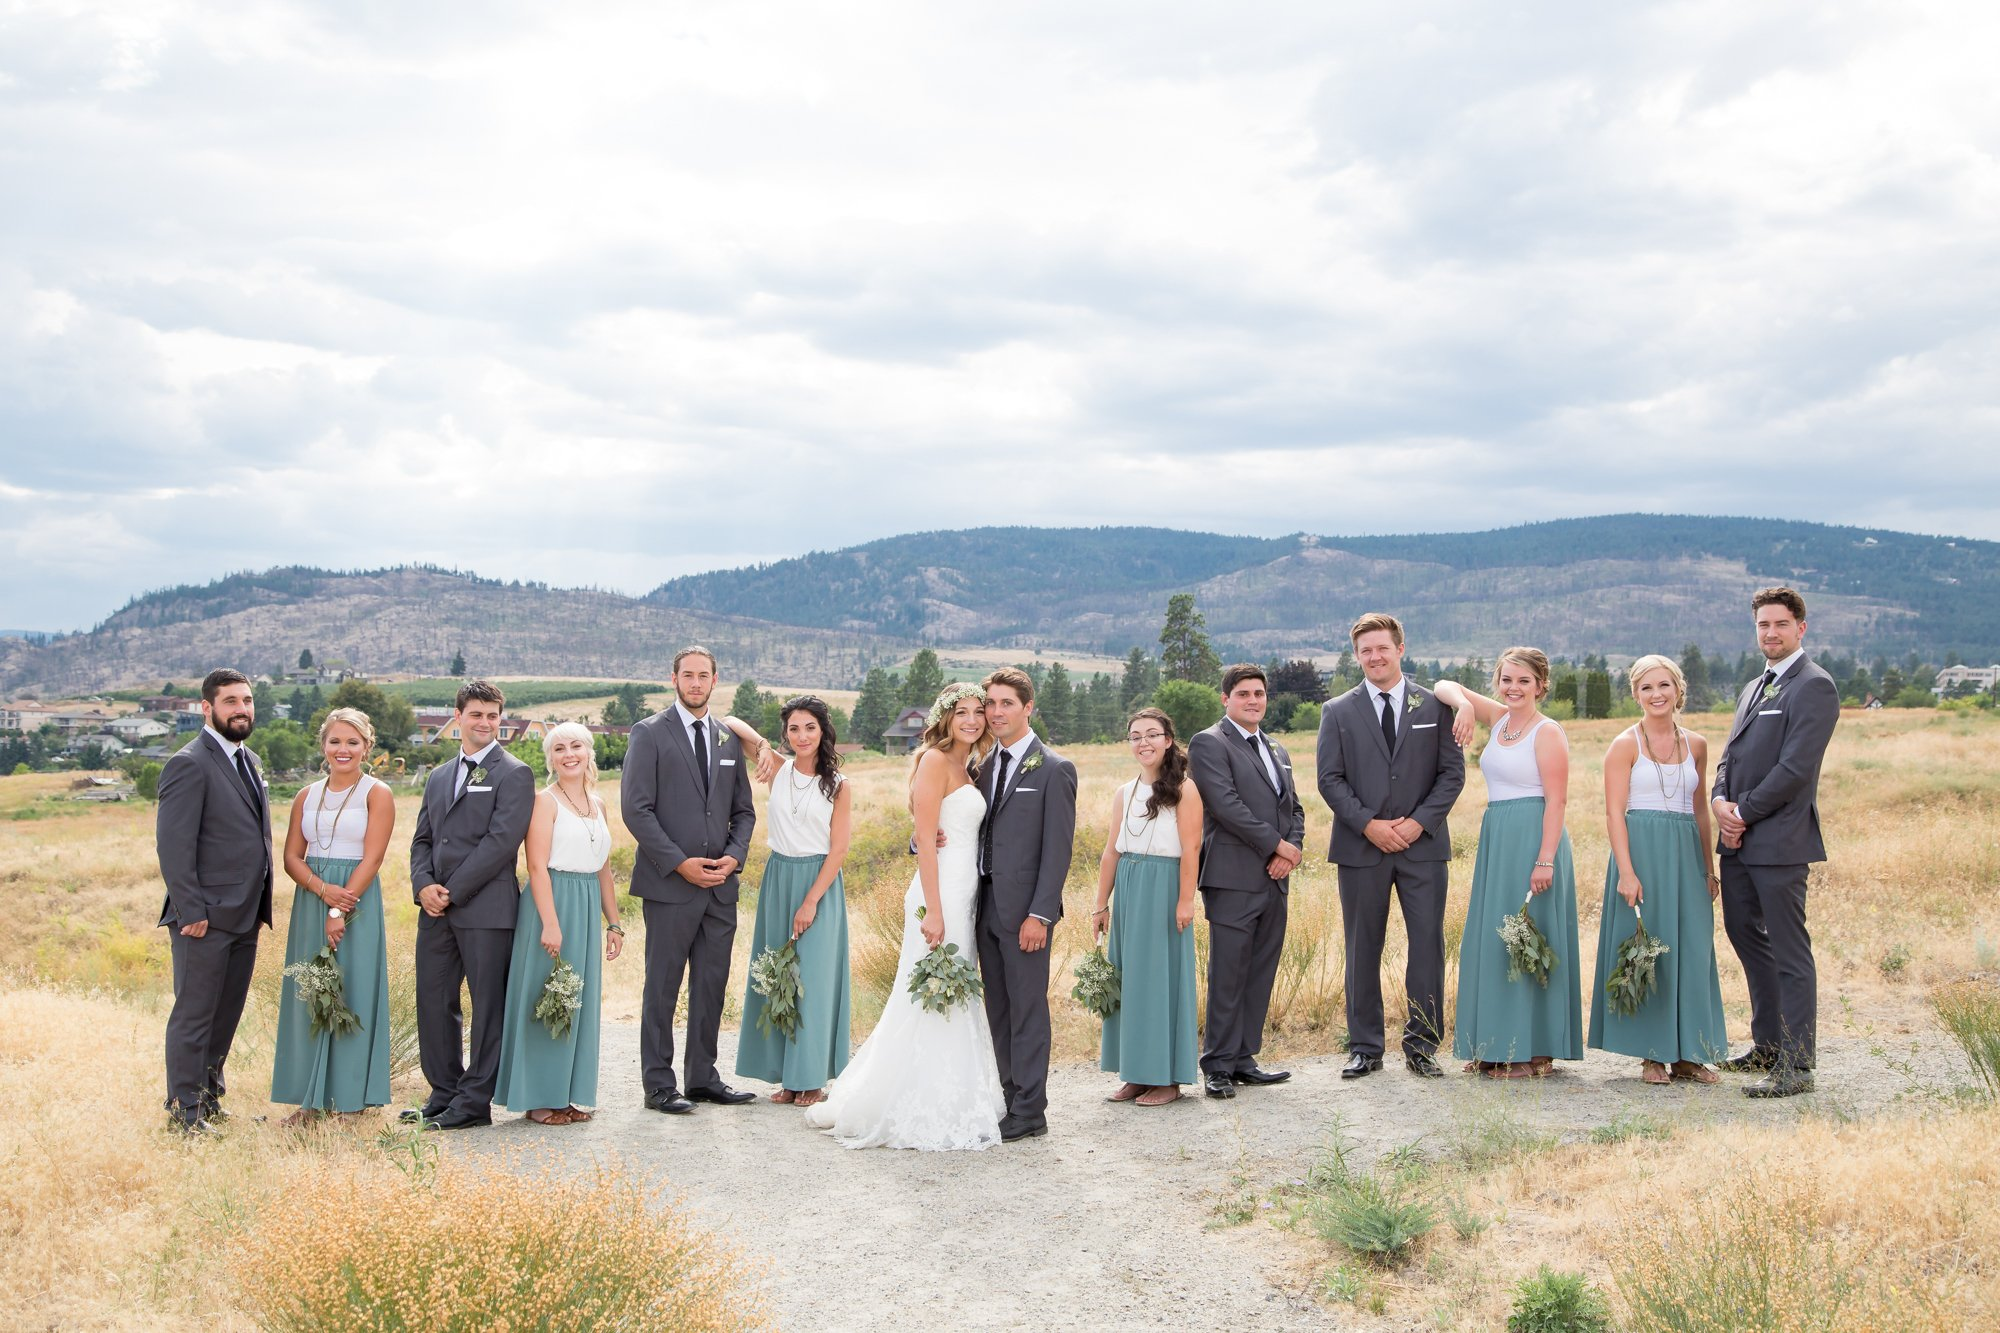 A large wedding party standing in an open field